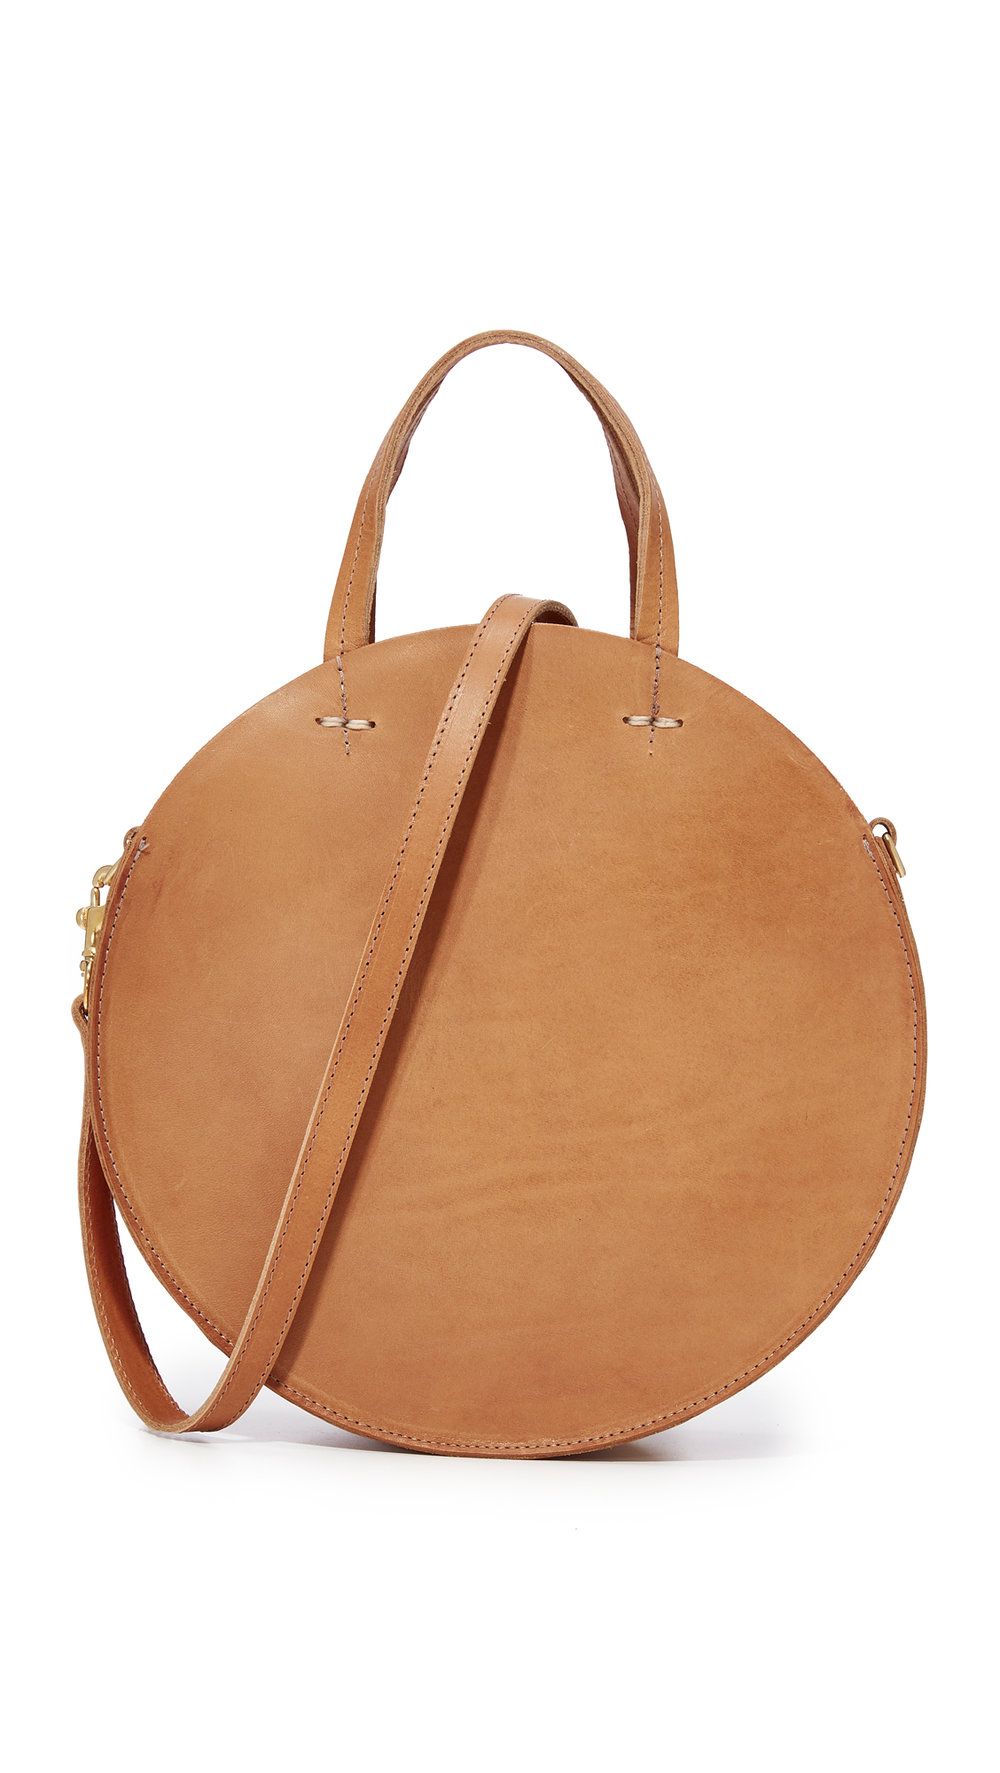 clare v. leather circle bag